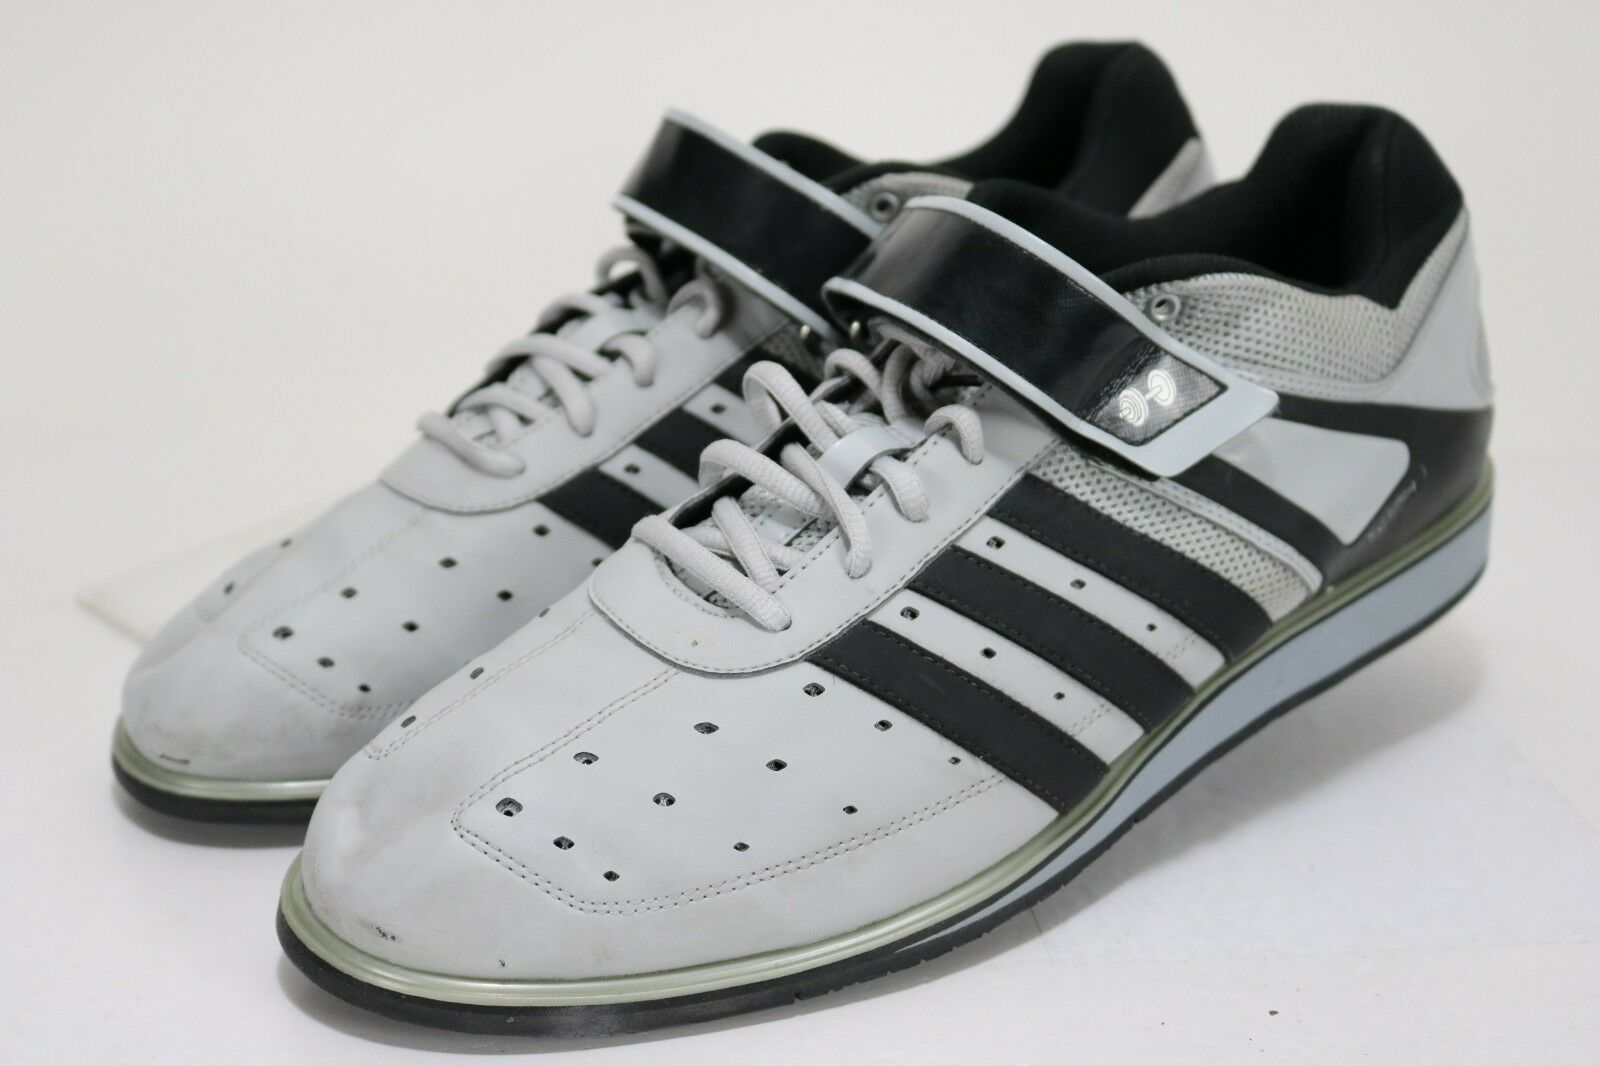 Adidas Powerlift Weightlifting  150 Men's CrossTraining shoes Size 15 Grey Black